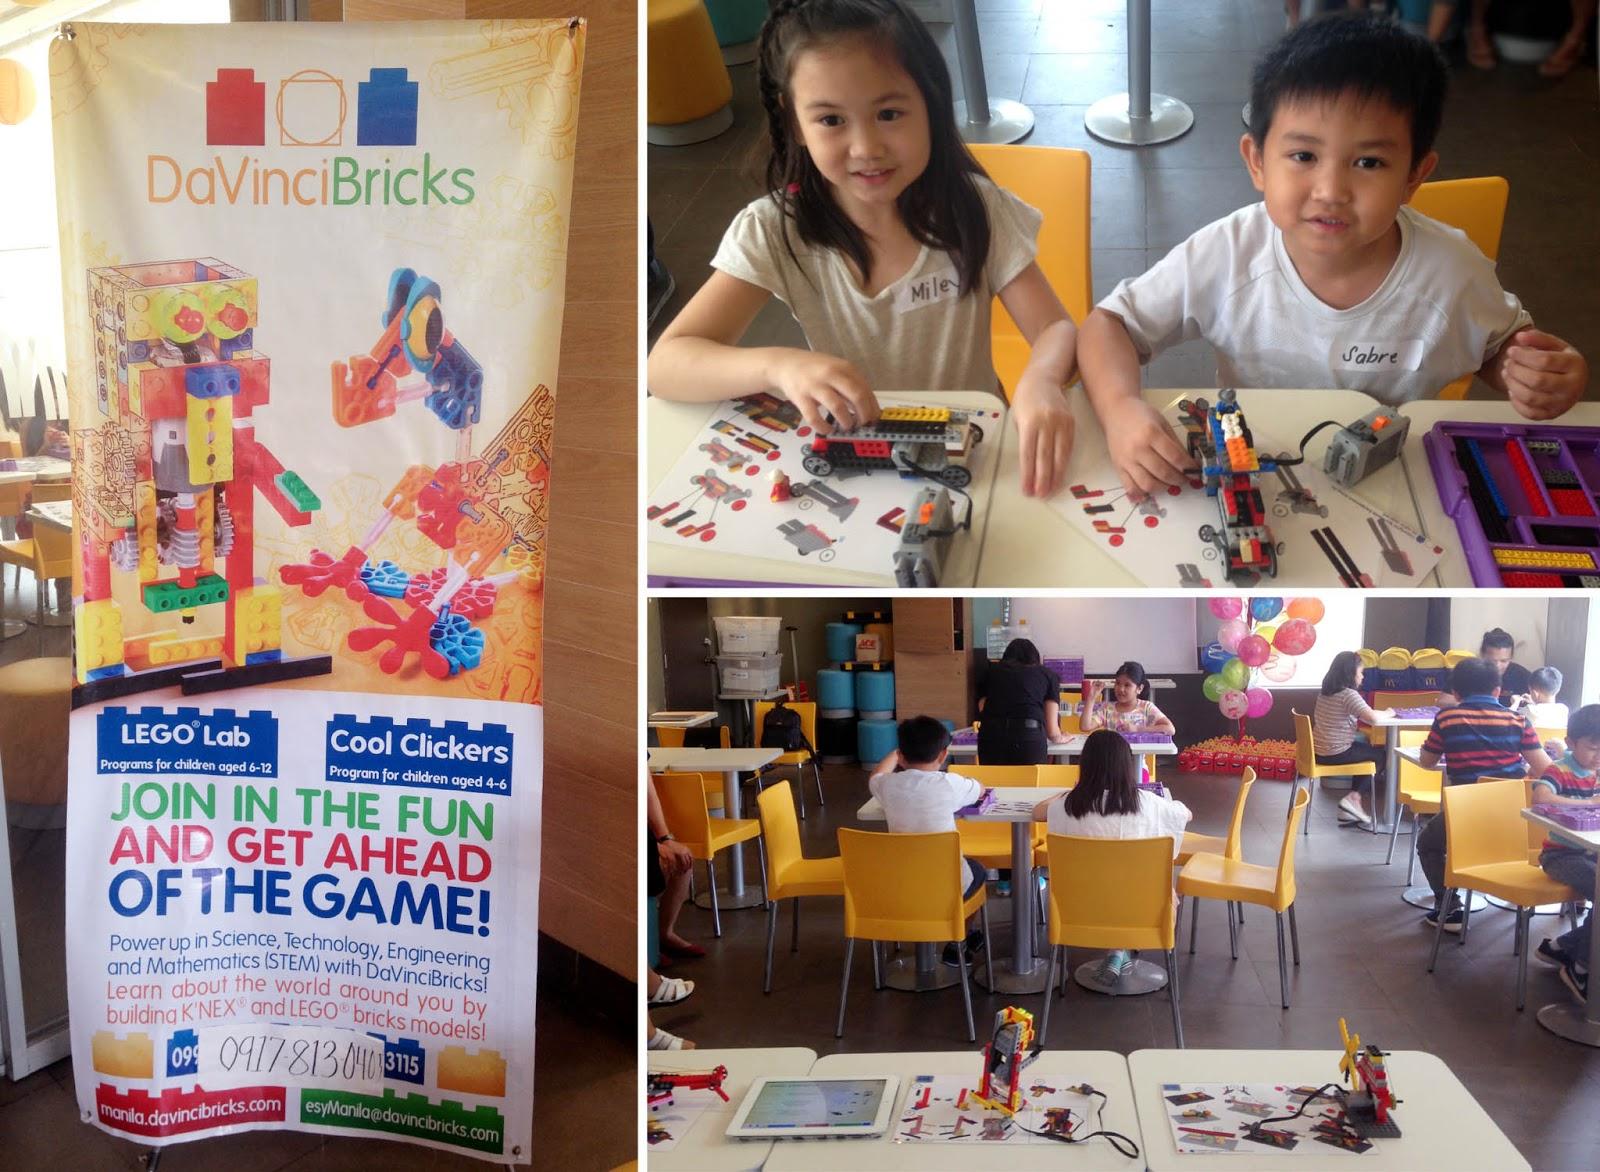 af63c691a37 ... a treat for them to go to a DaVinciBricks LEGO Lab last July 16. It was  held at McDonald s here in BF Homes so it was double the fun for them too.